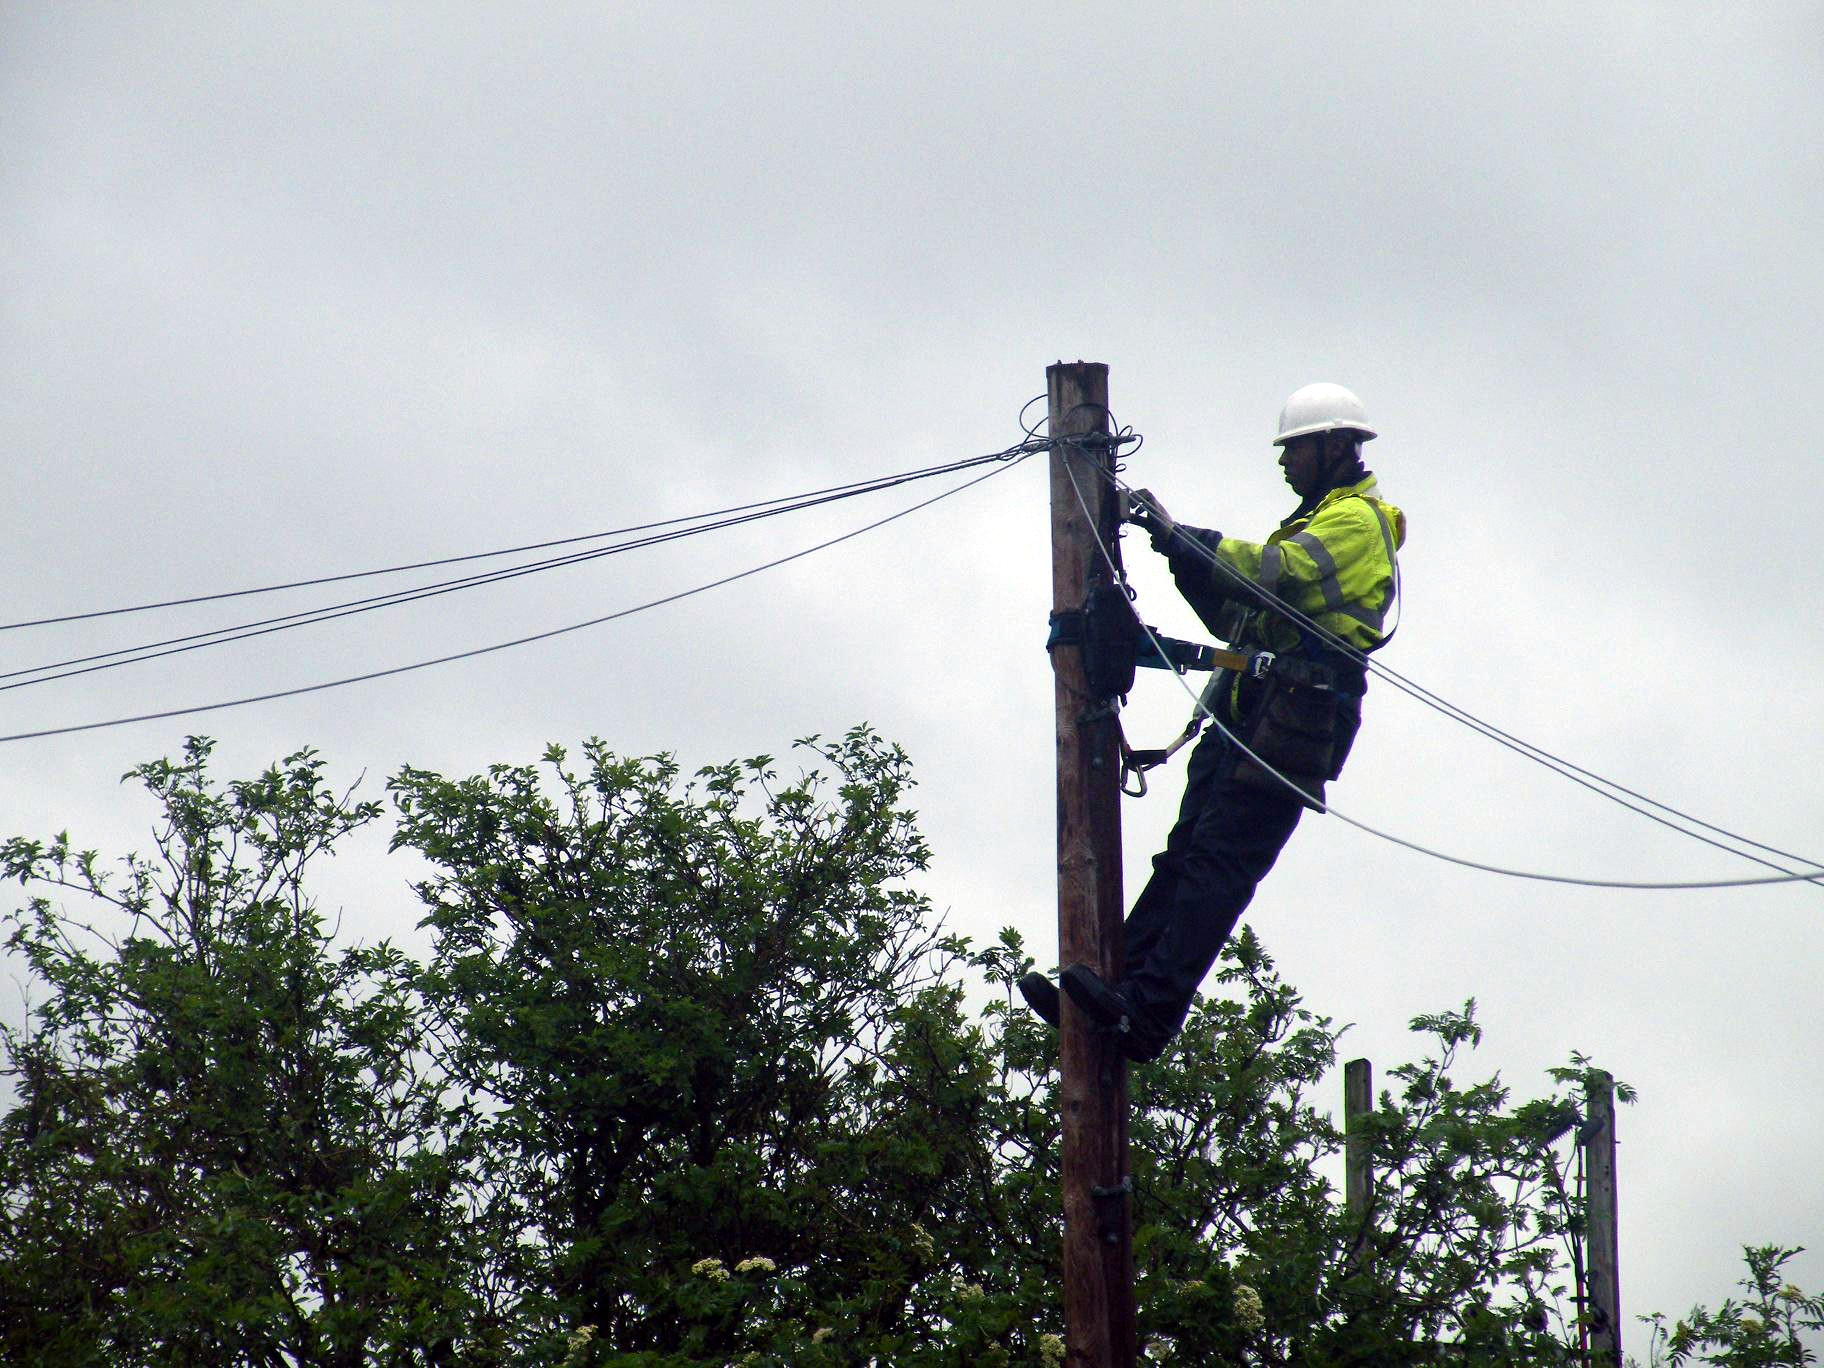 File:BT Openreach Engineer Up Pole 2012 May 09.JPG ...